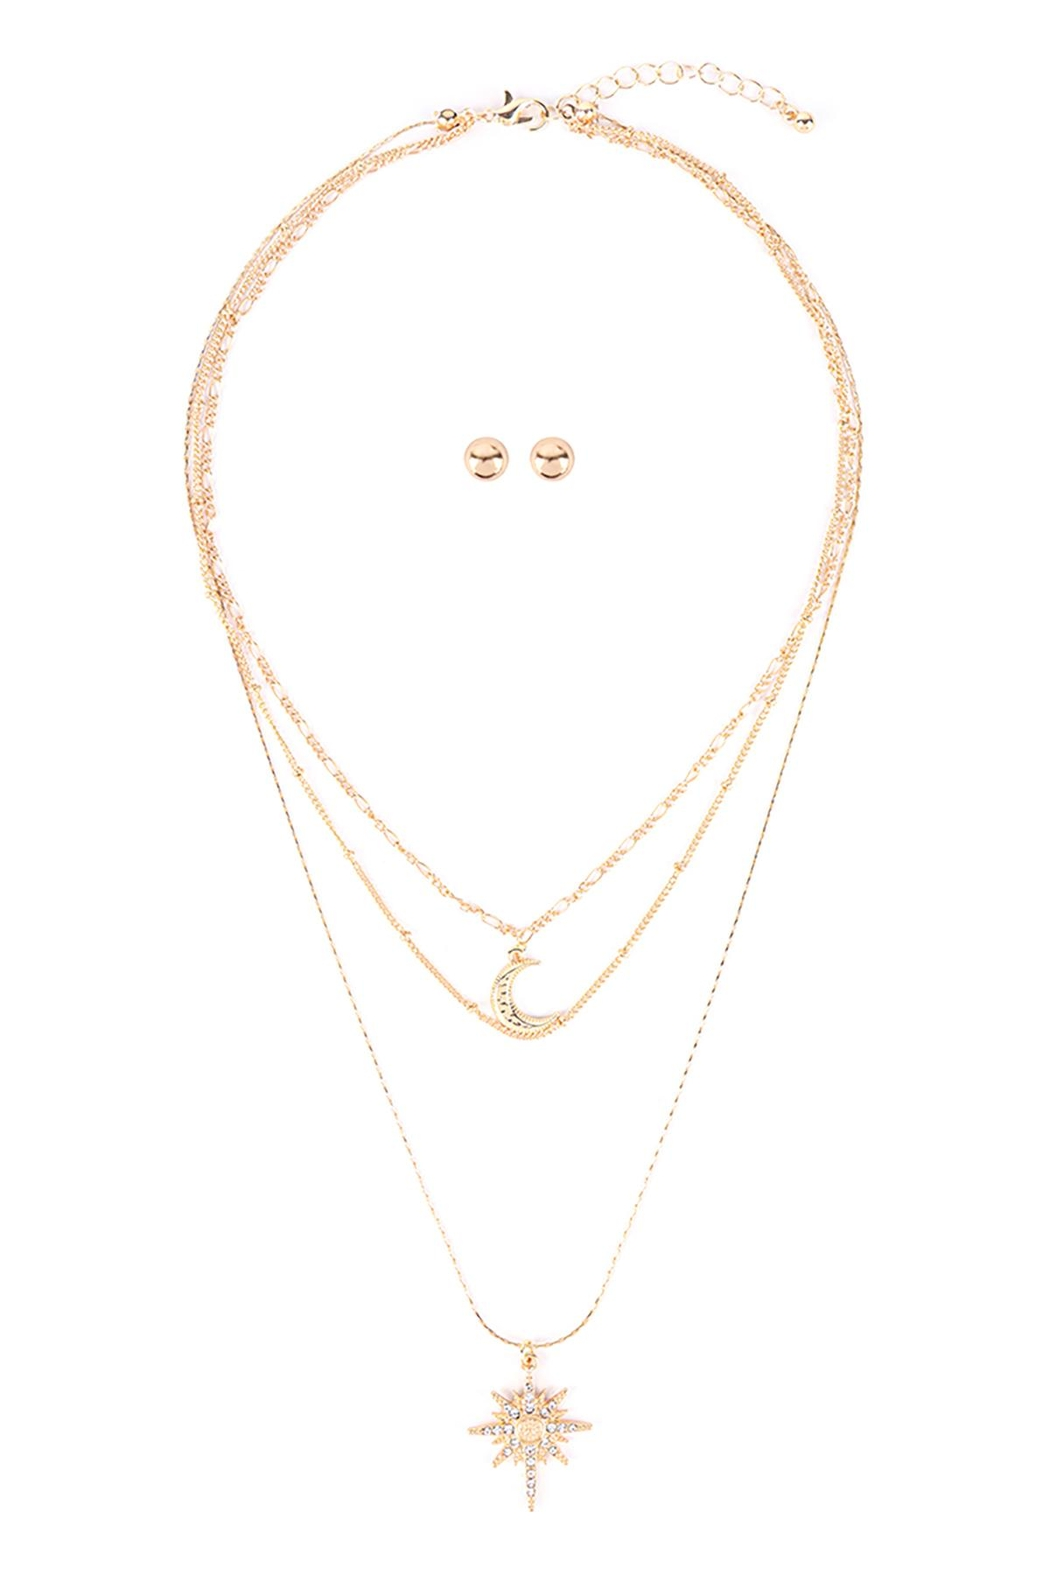 Riah Fashion Starburst-Layered-Pave-Crystal-Necklace-And-Earring-Set - Main Image